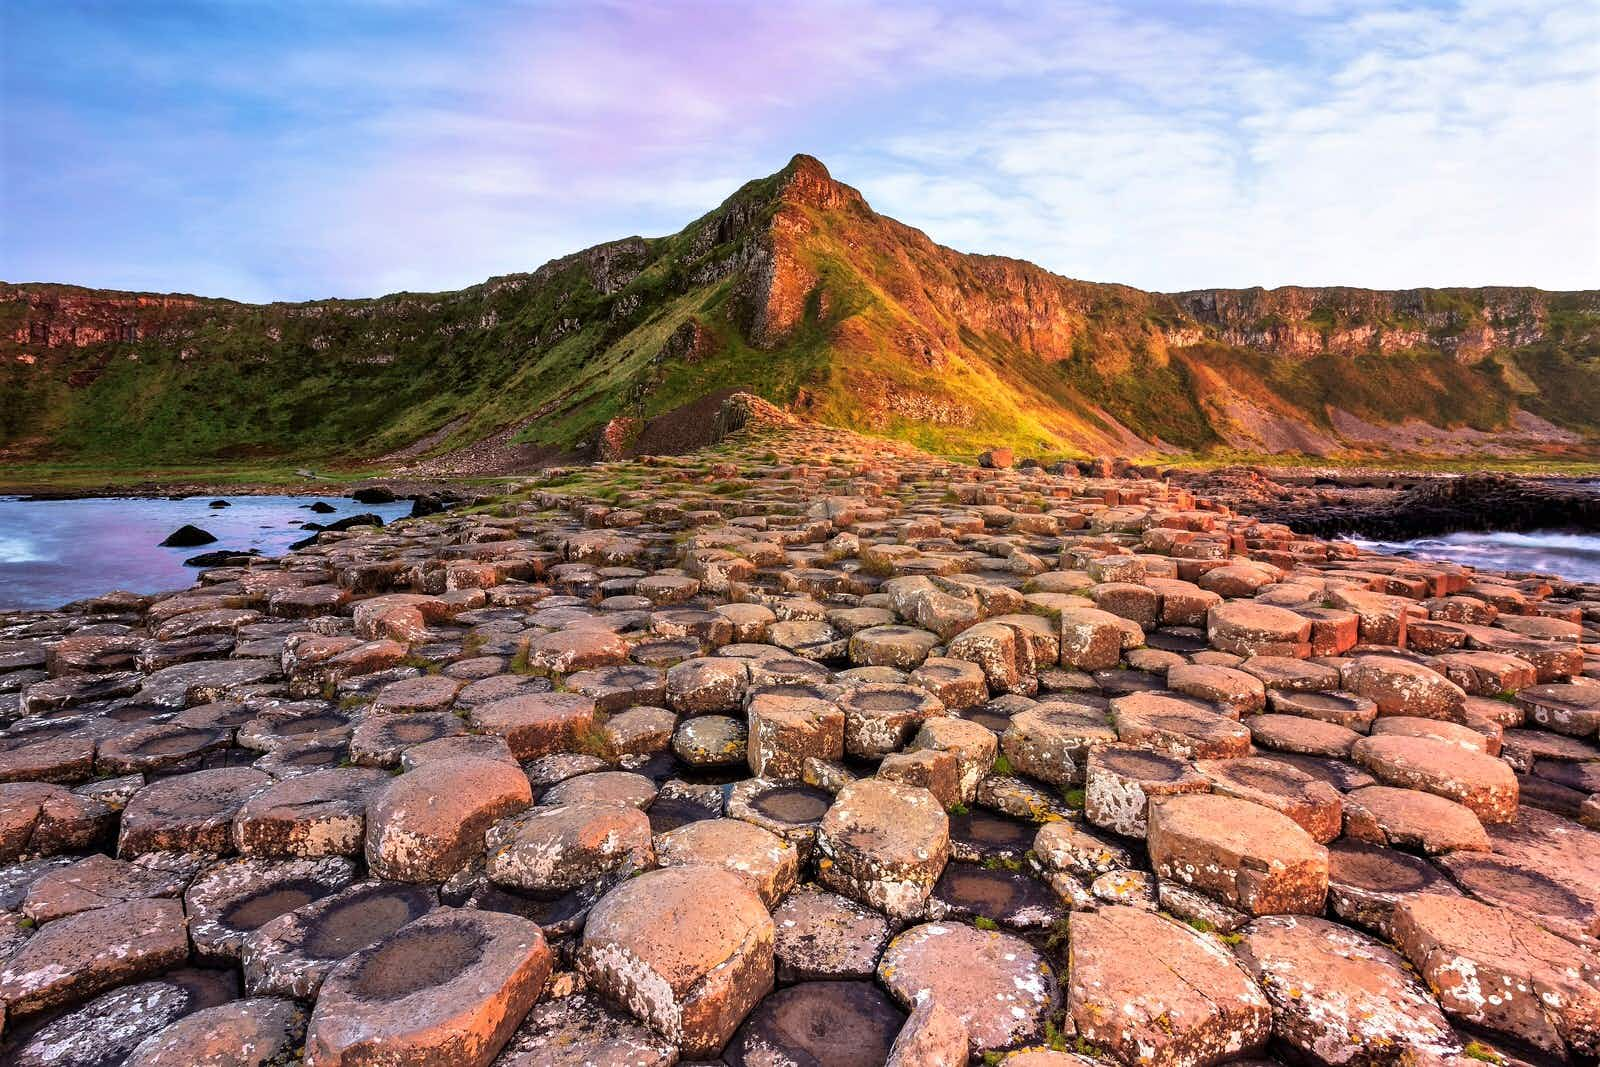 A view of the Giant's Causeway's rock formations at sunset.